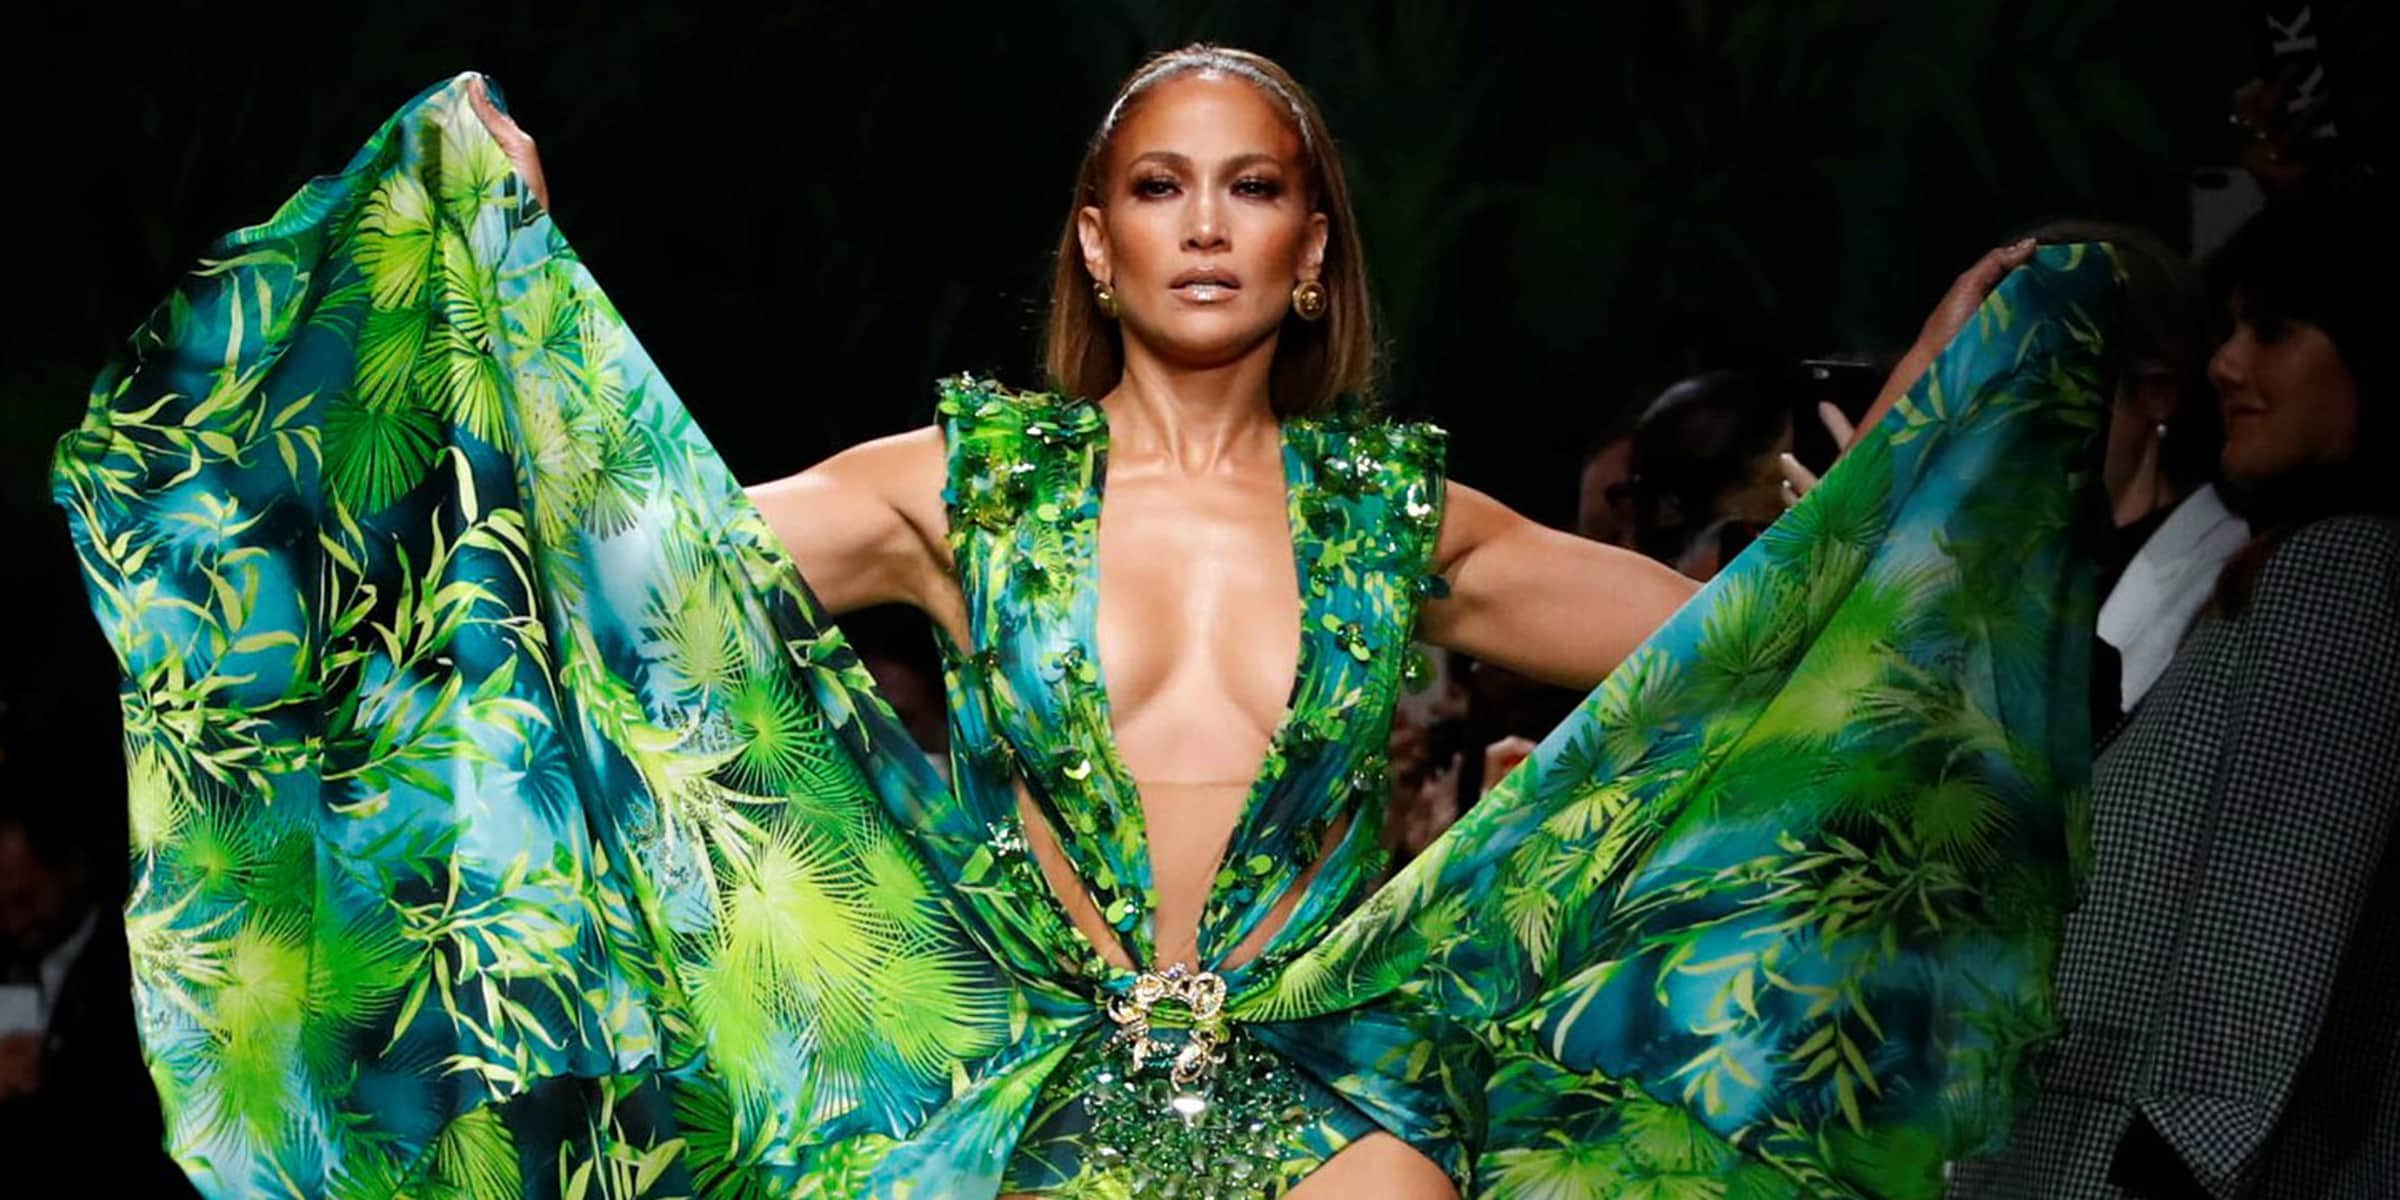 JLo sfila per Versace con il mitico Jungle Dress